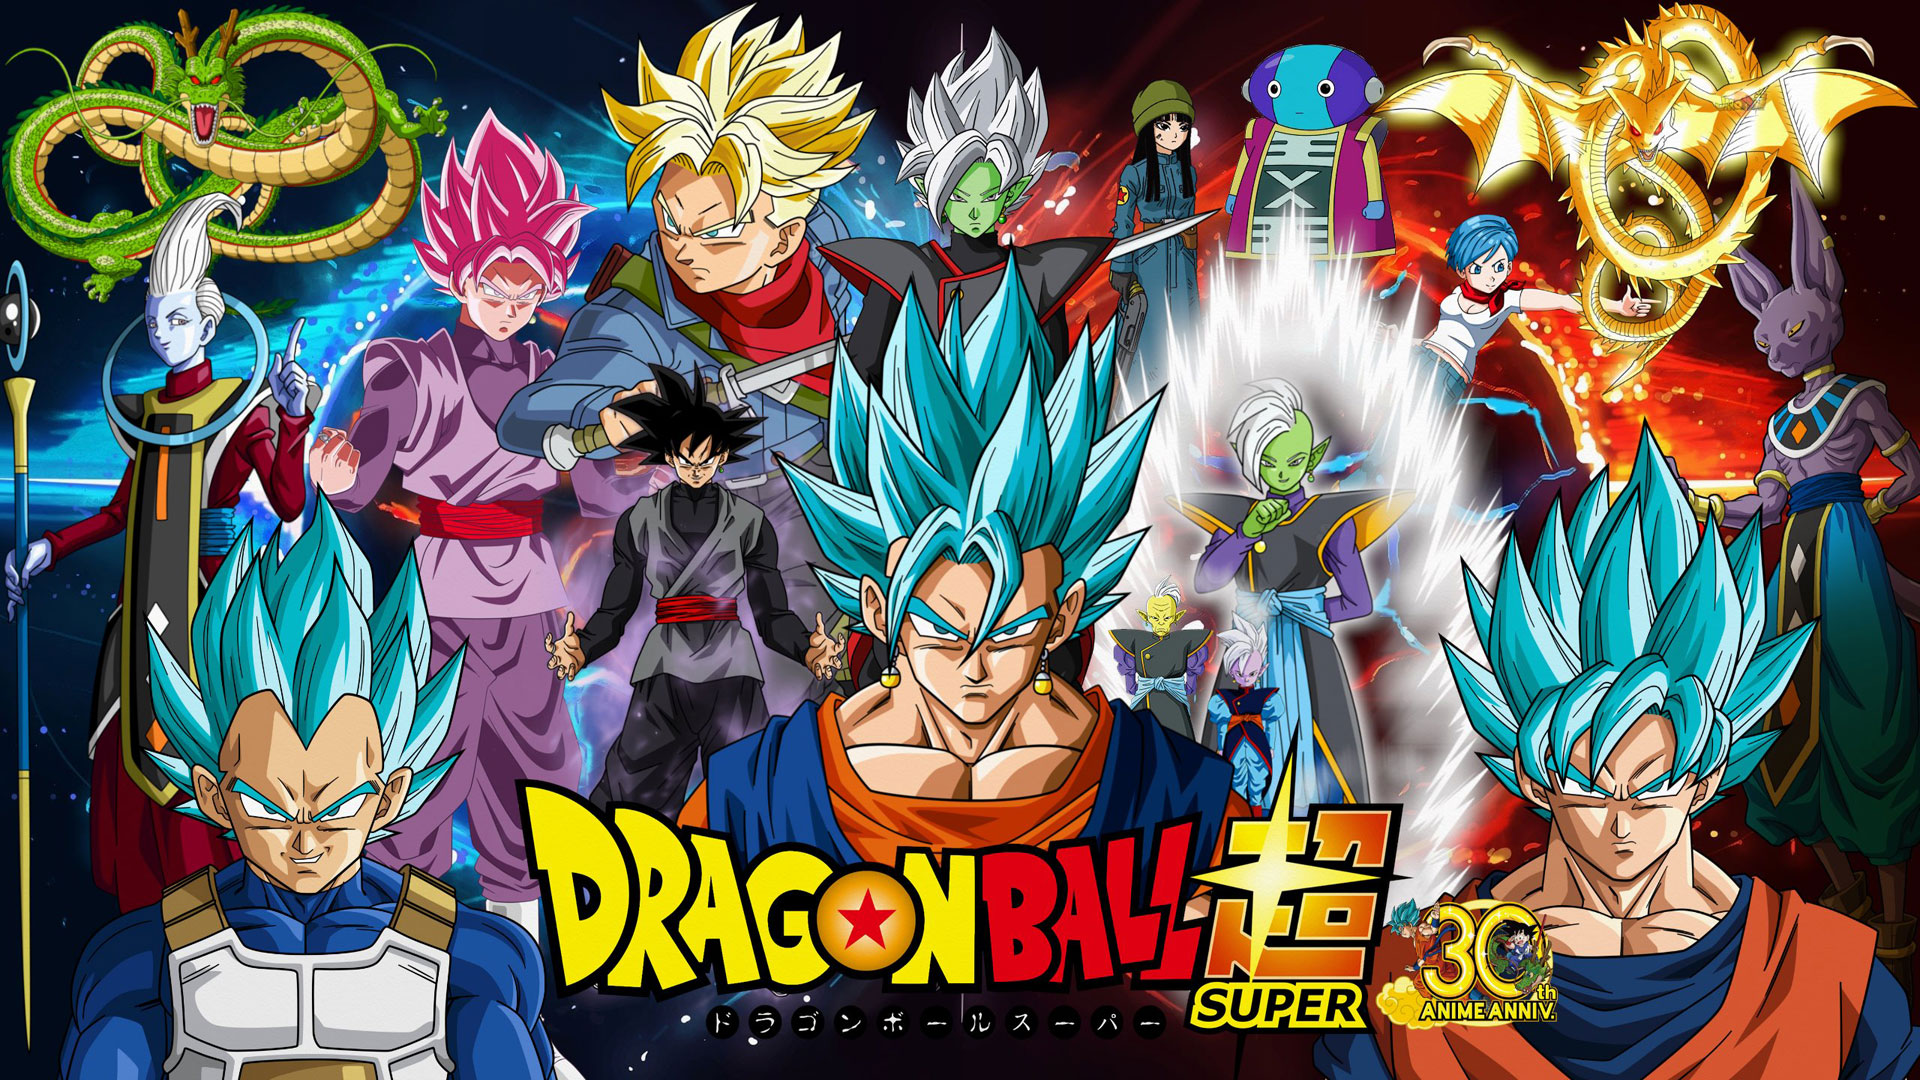 Dragon Ball Super 2 Ps4wallpaperscom